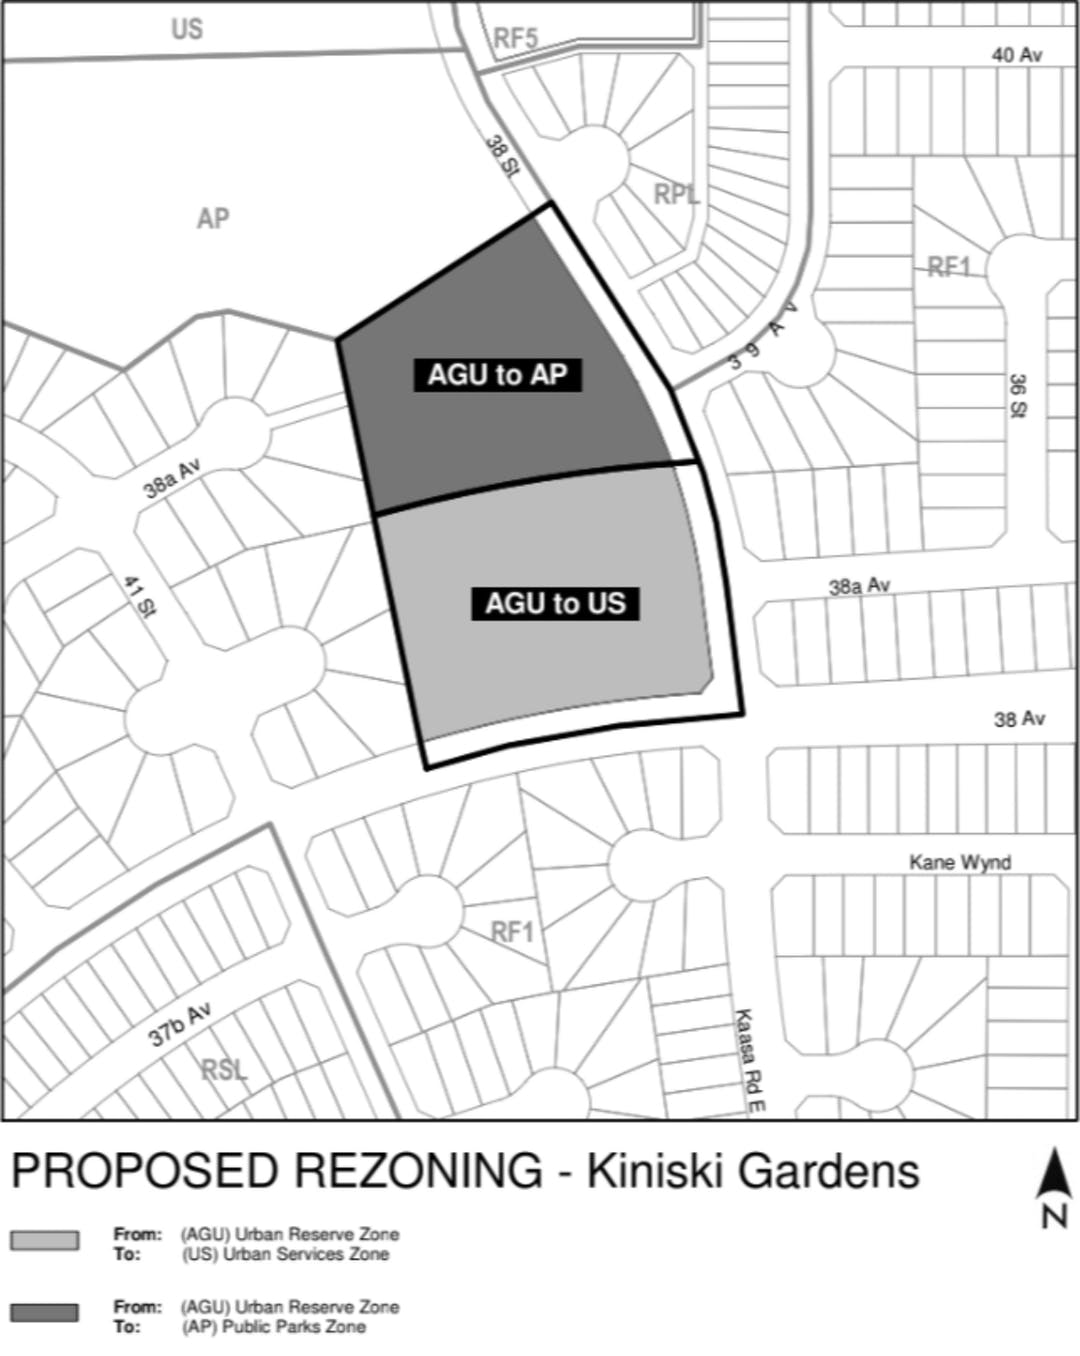 """A black and white line map showing the areas of rezoning and surrounding area, titled """"Proposed Rezoning - Kiniski Gardens""""."""